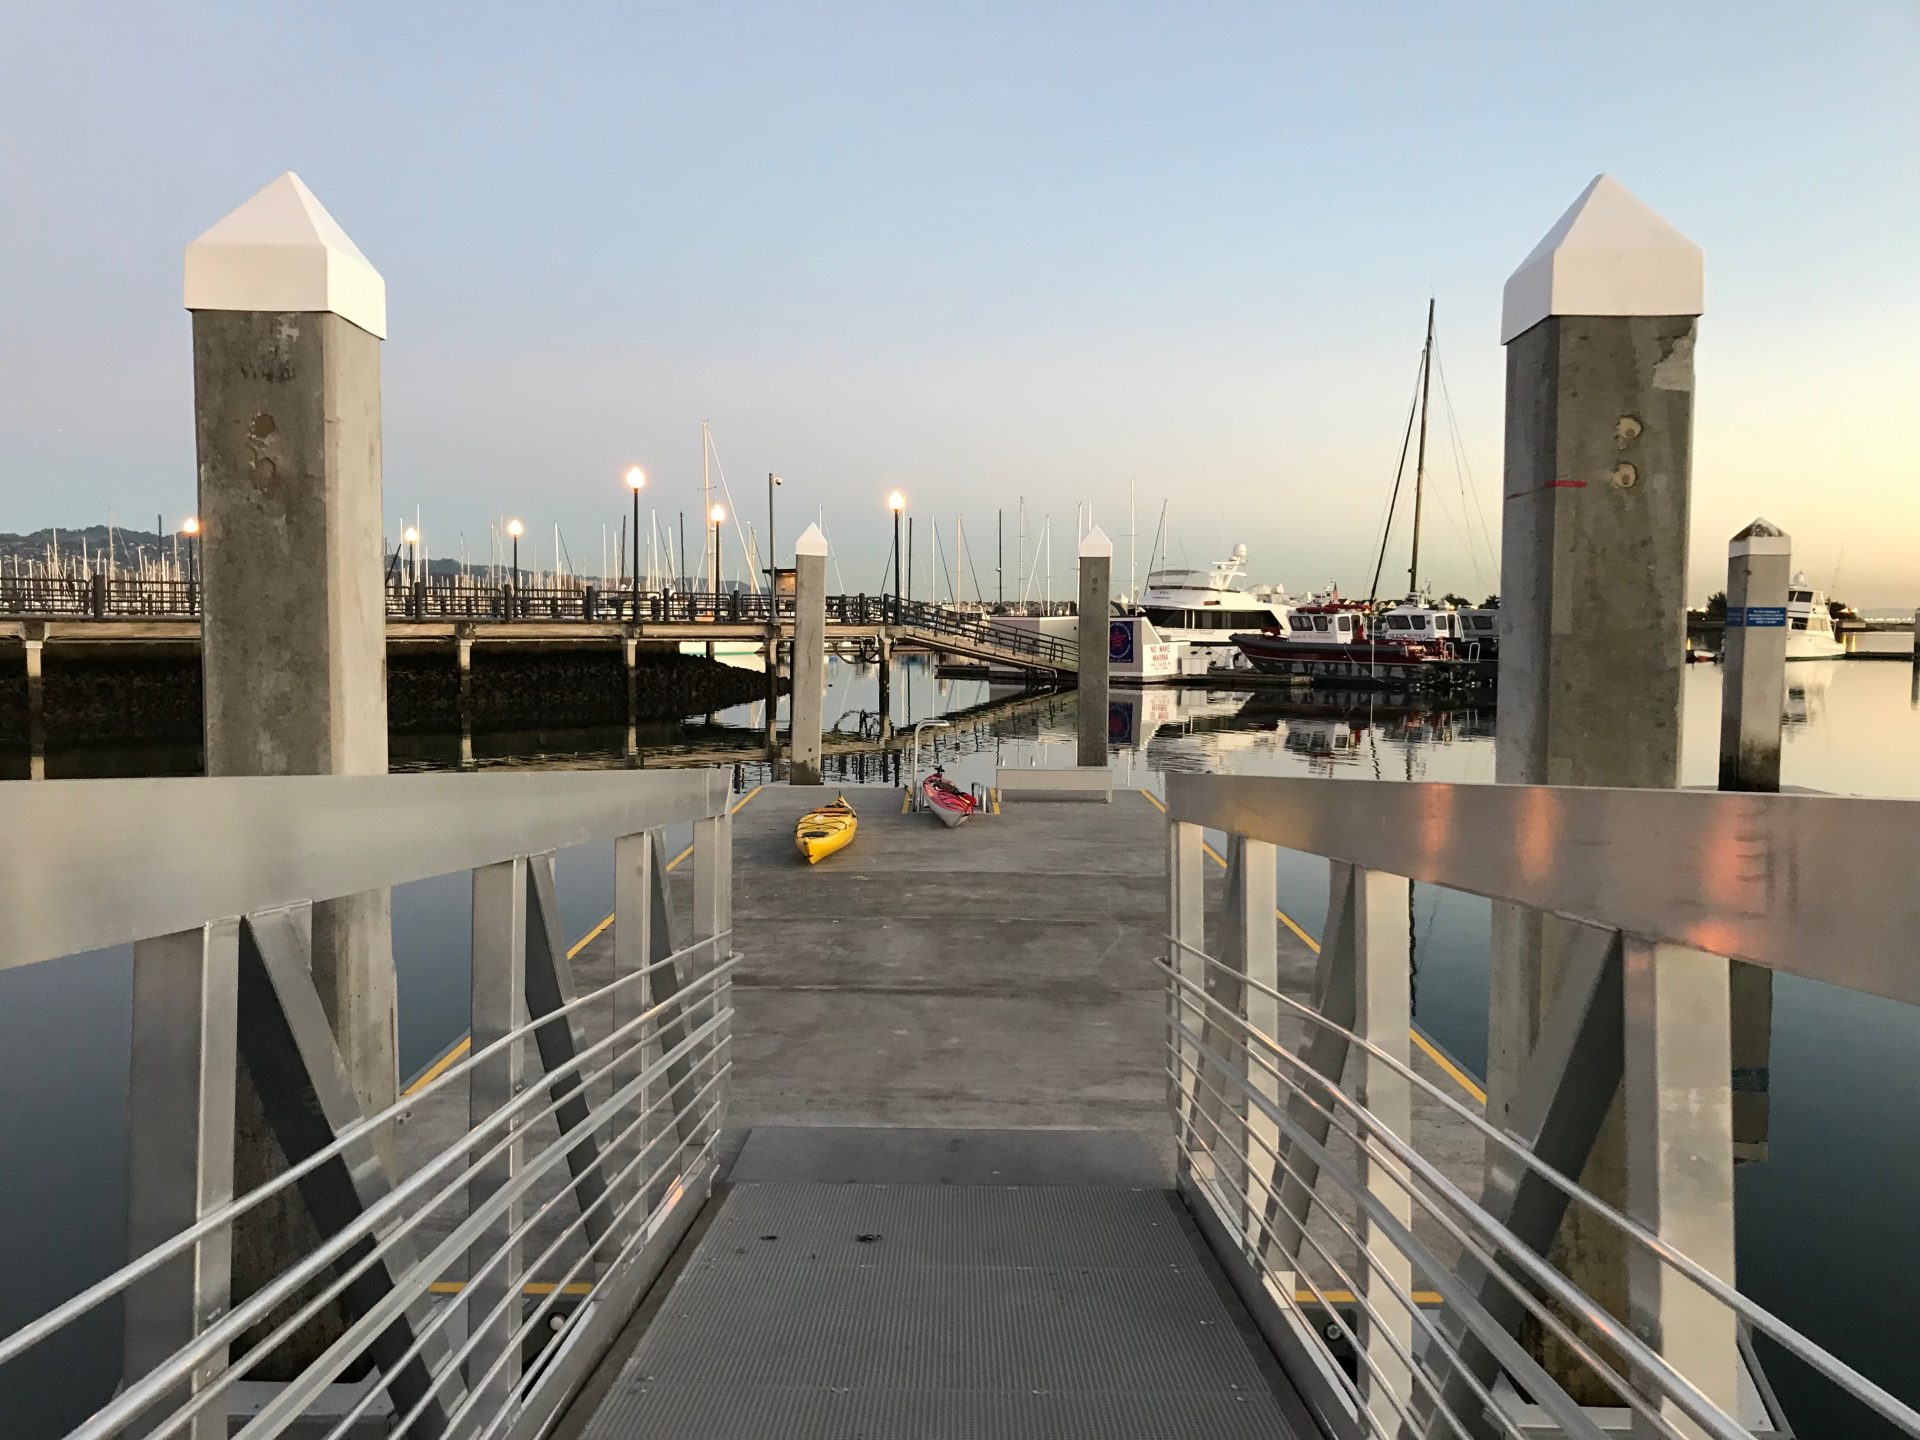 view down ramp to pier with kayaks ready to launch